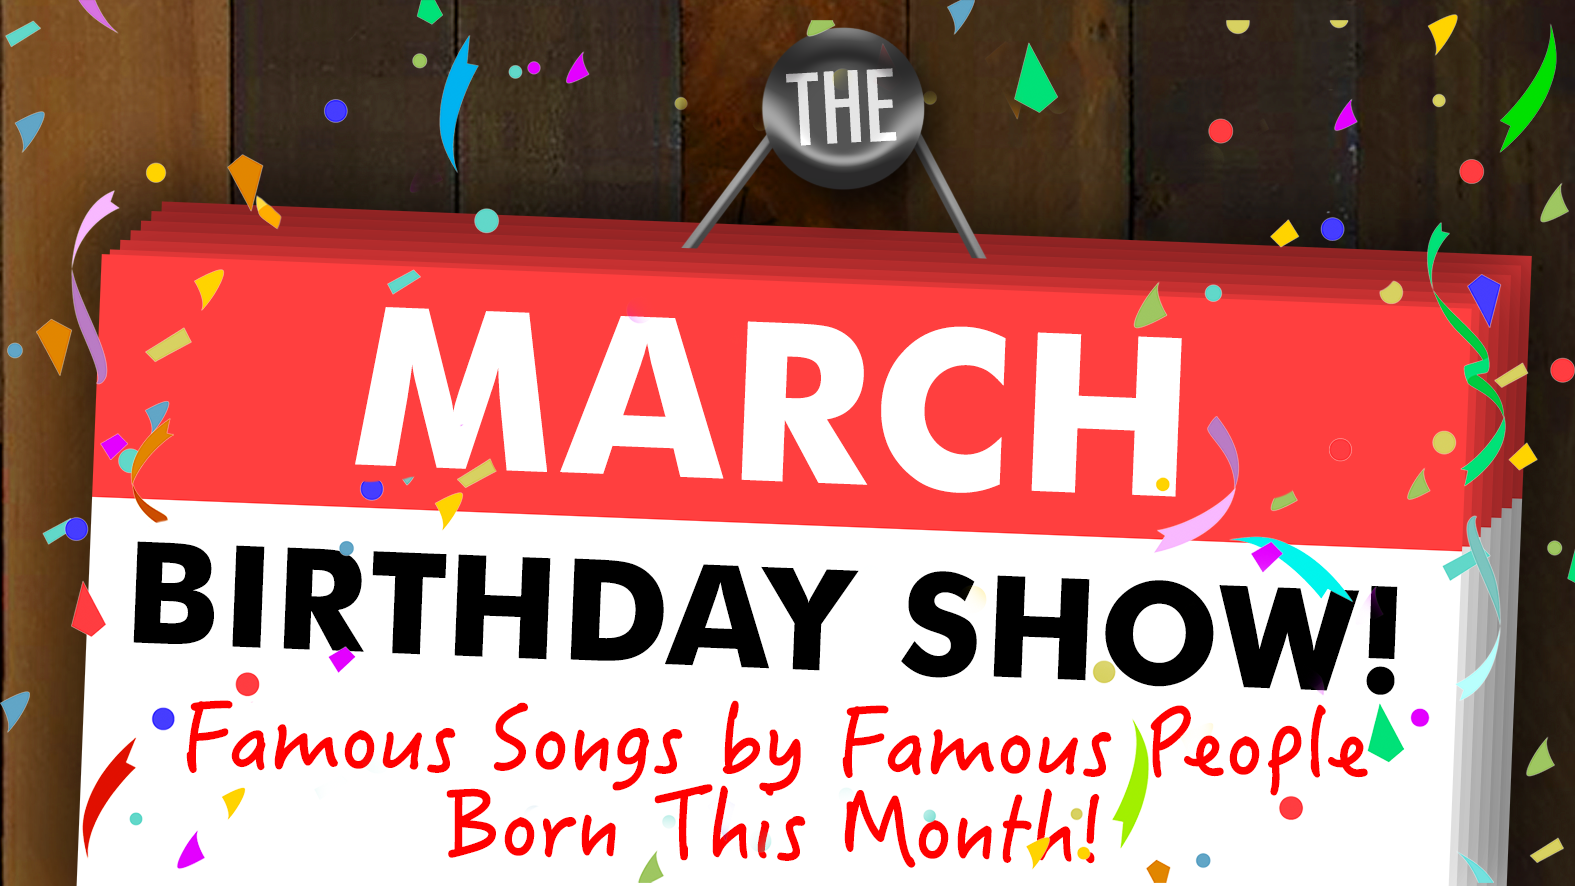 The March Birthday Show! Famous Songs by Famous People Born This Month!